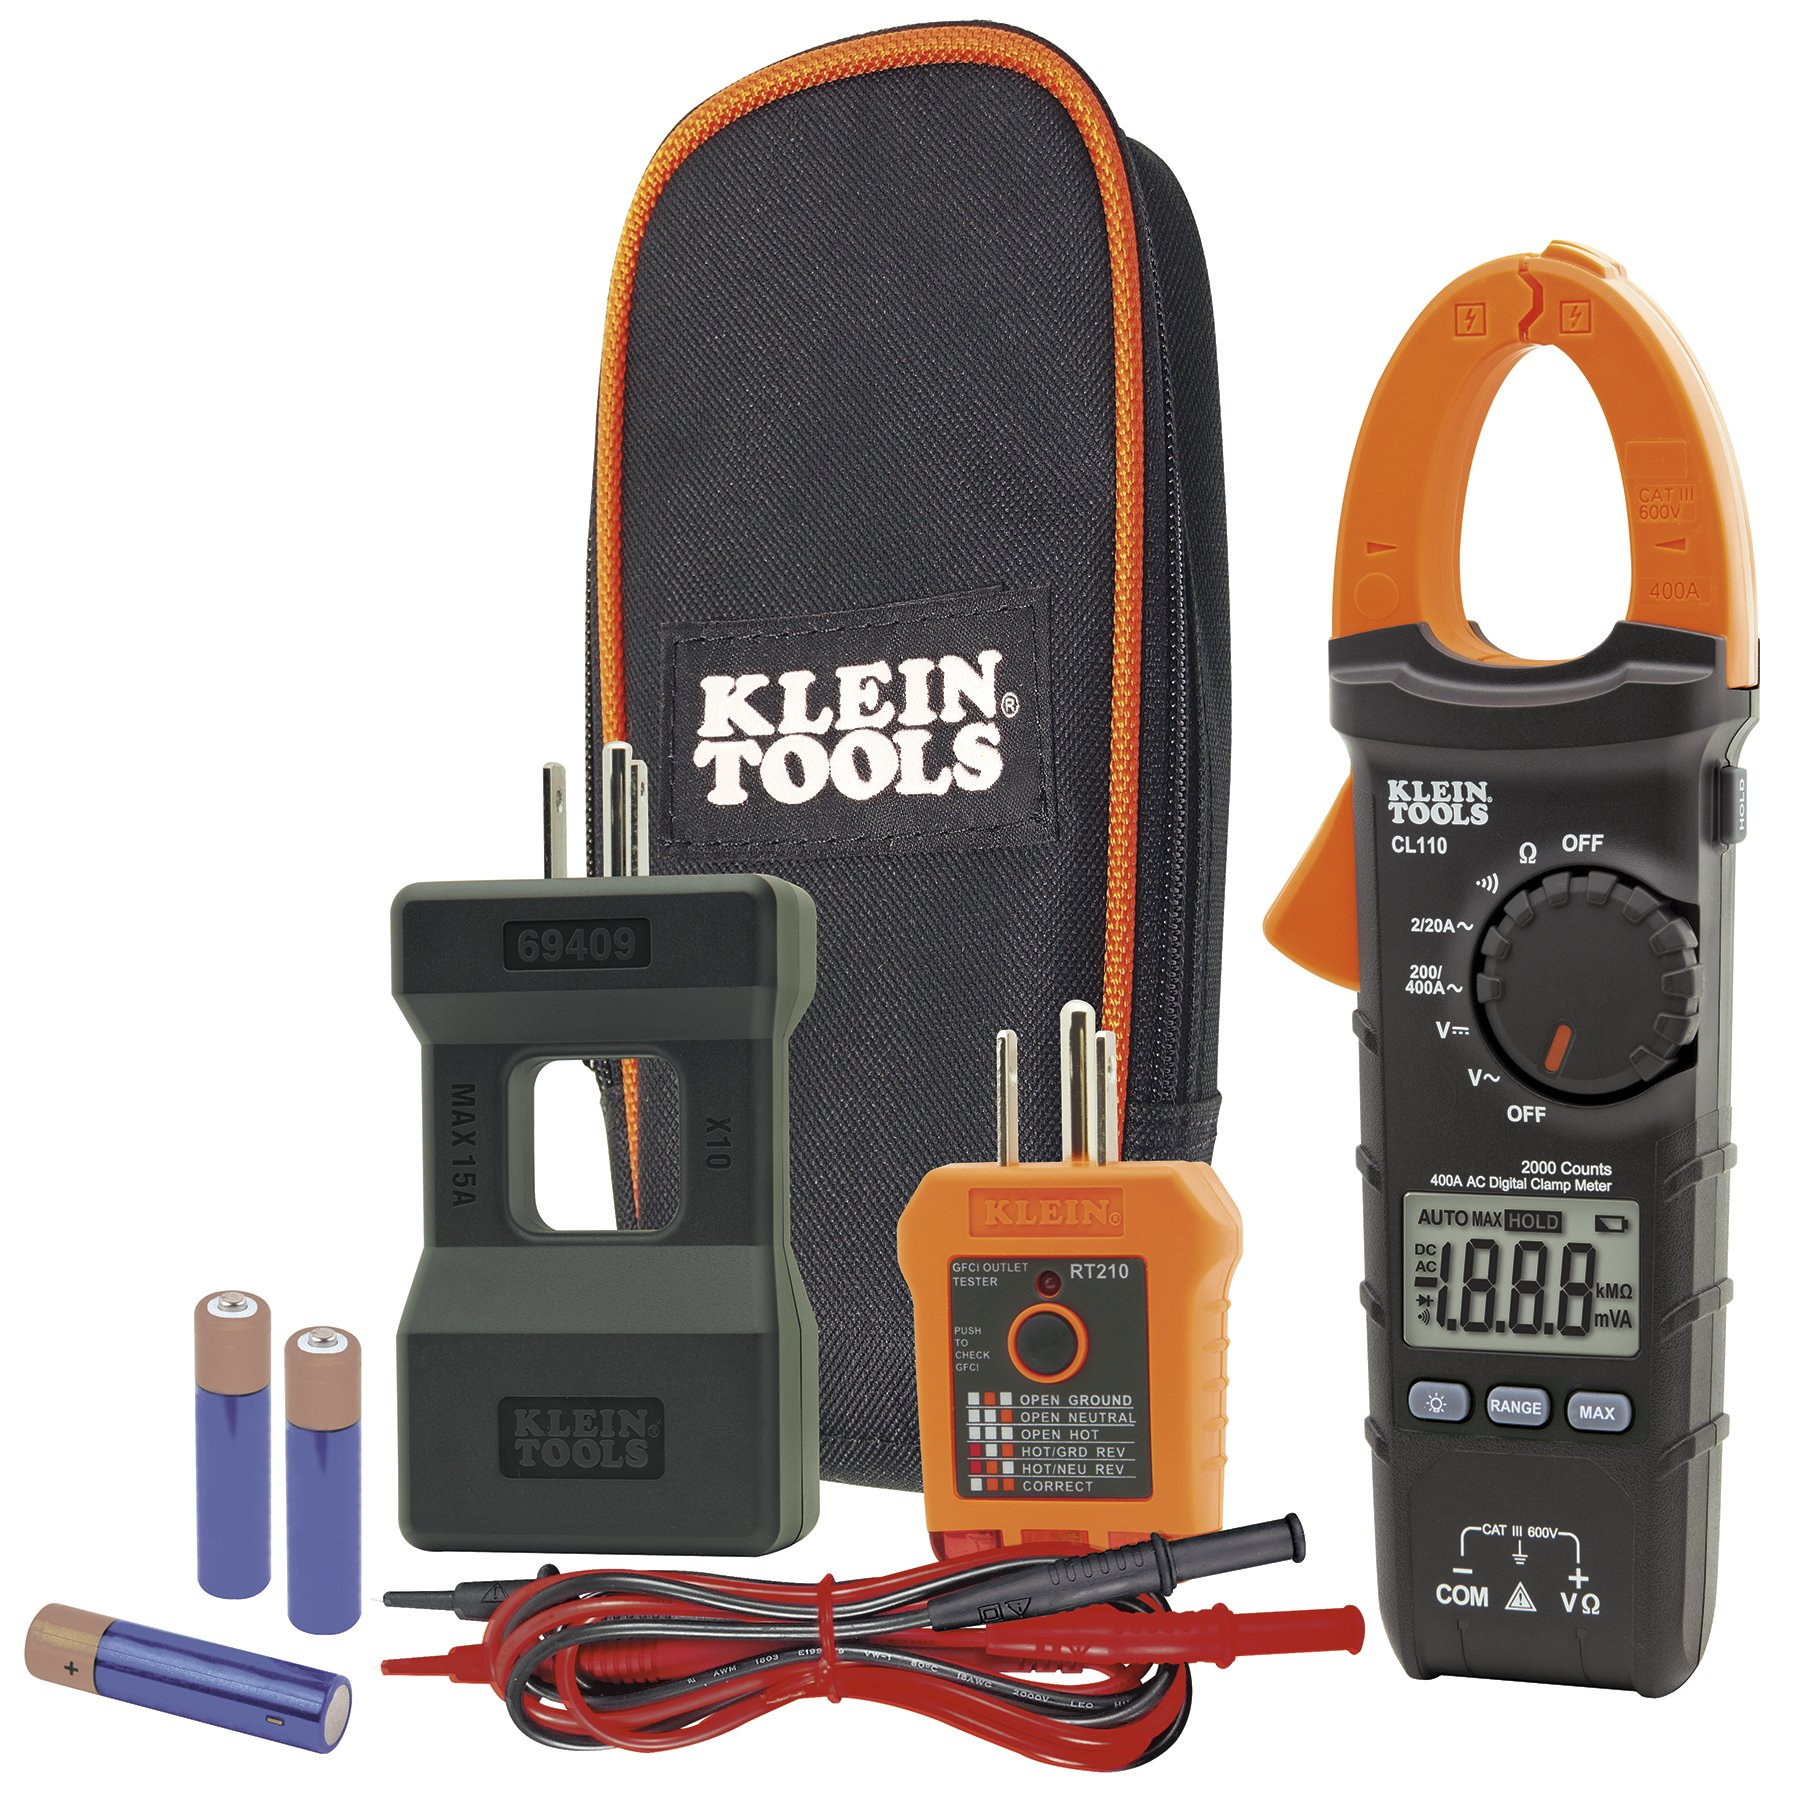 Klein Tools CL110KIT Electrical Maintenance & Test Kit For AC/DC Voltage, Resistance & Continuity, includes Case, Leads & Batteries by Klein Tools